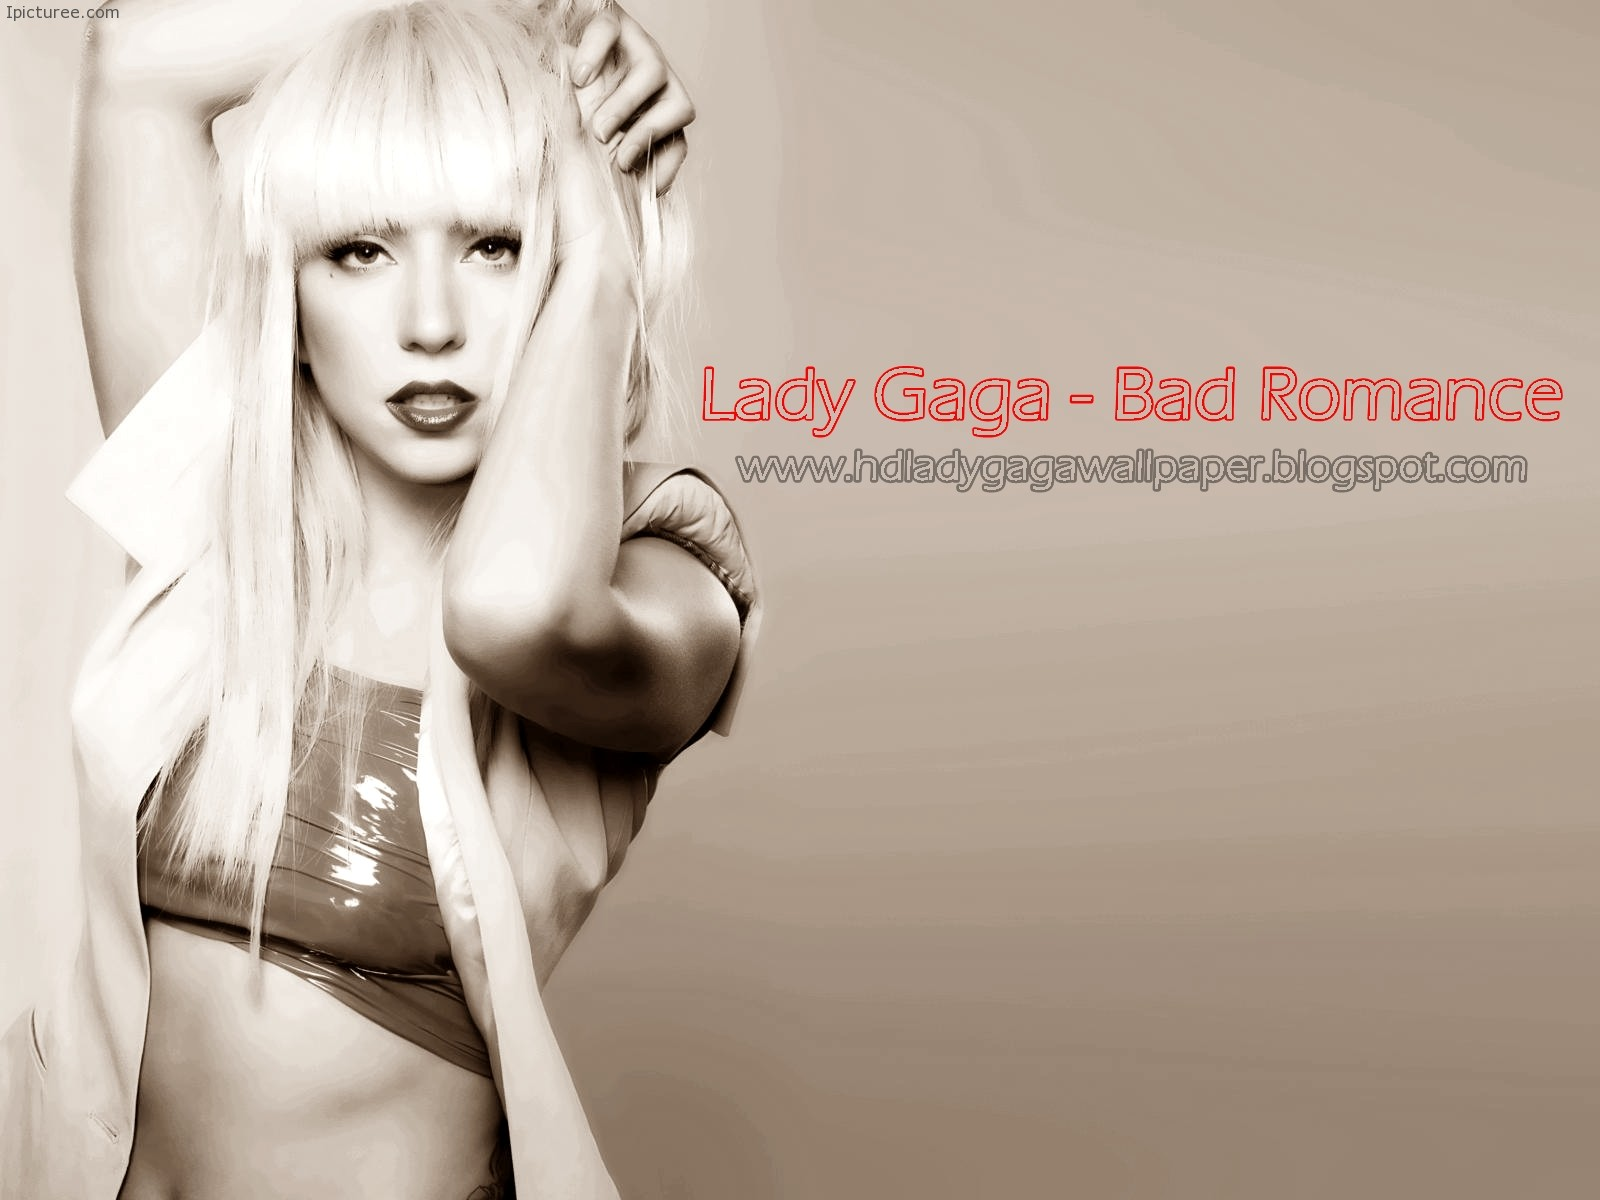 Lady Gaga – Bad Romance Lyrics And Wallpaper